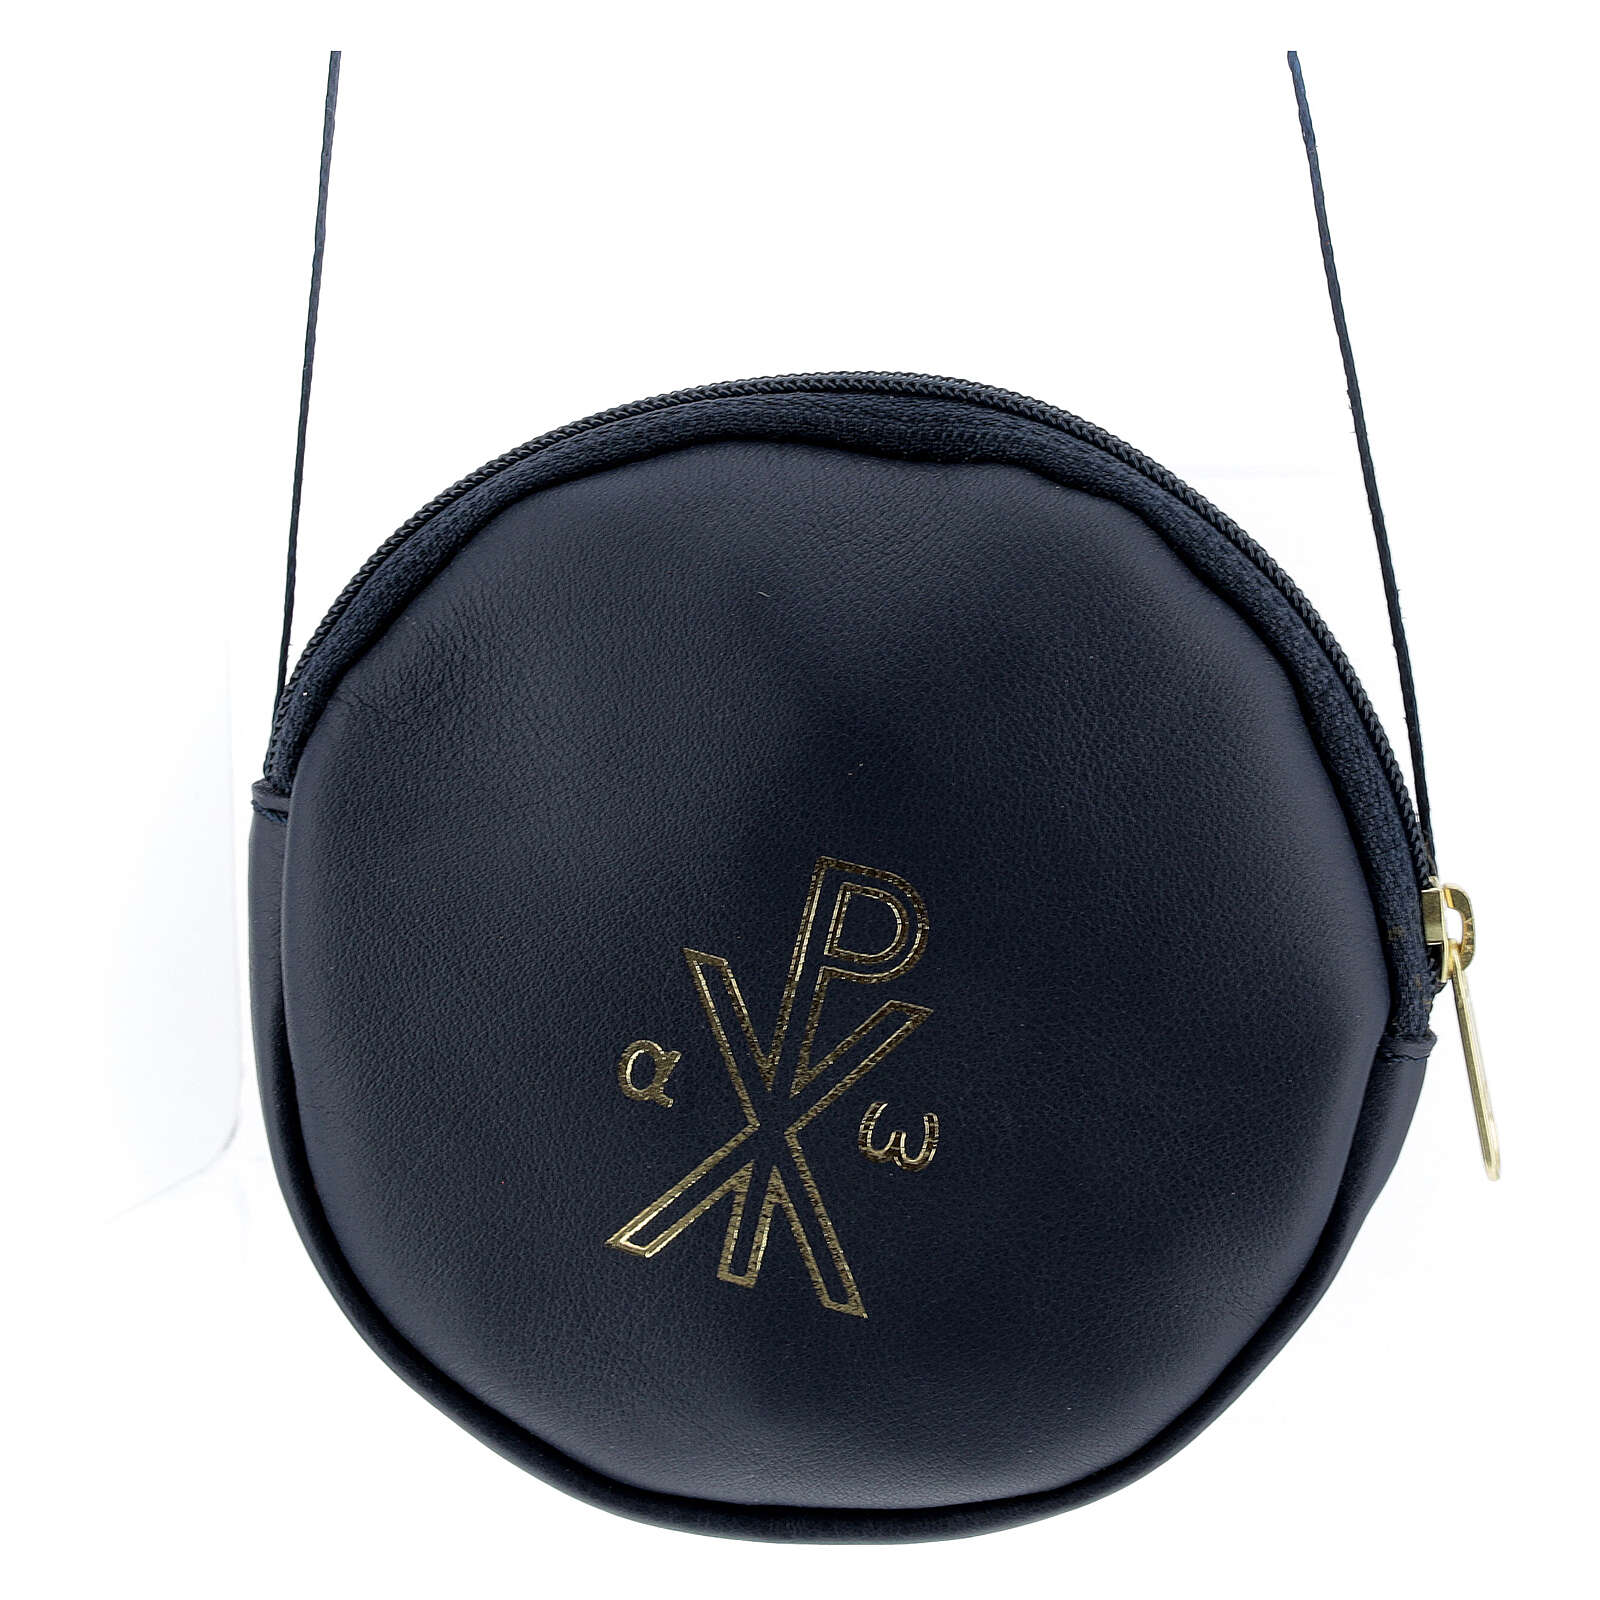 Paten case in real blue leather monogram Christ gold 12 cm 4